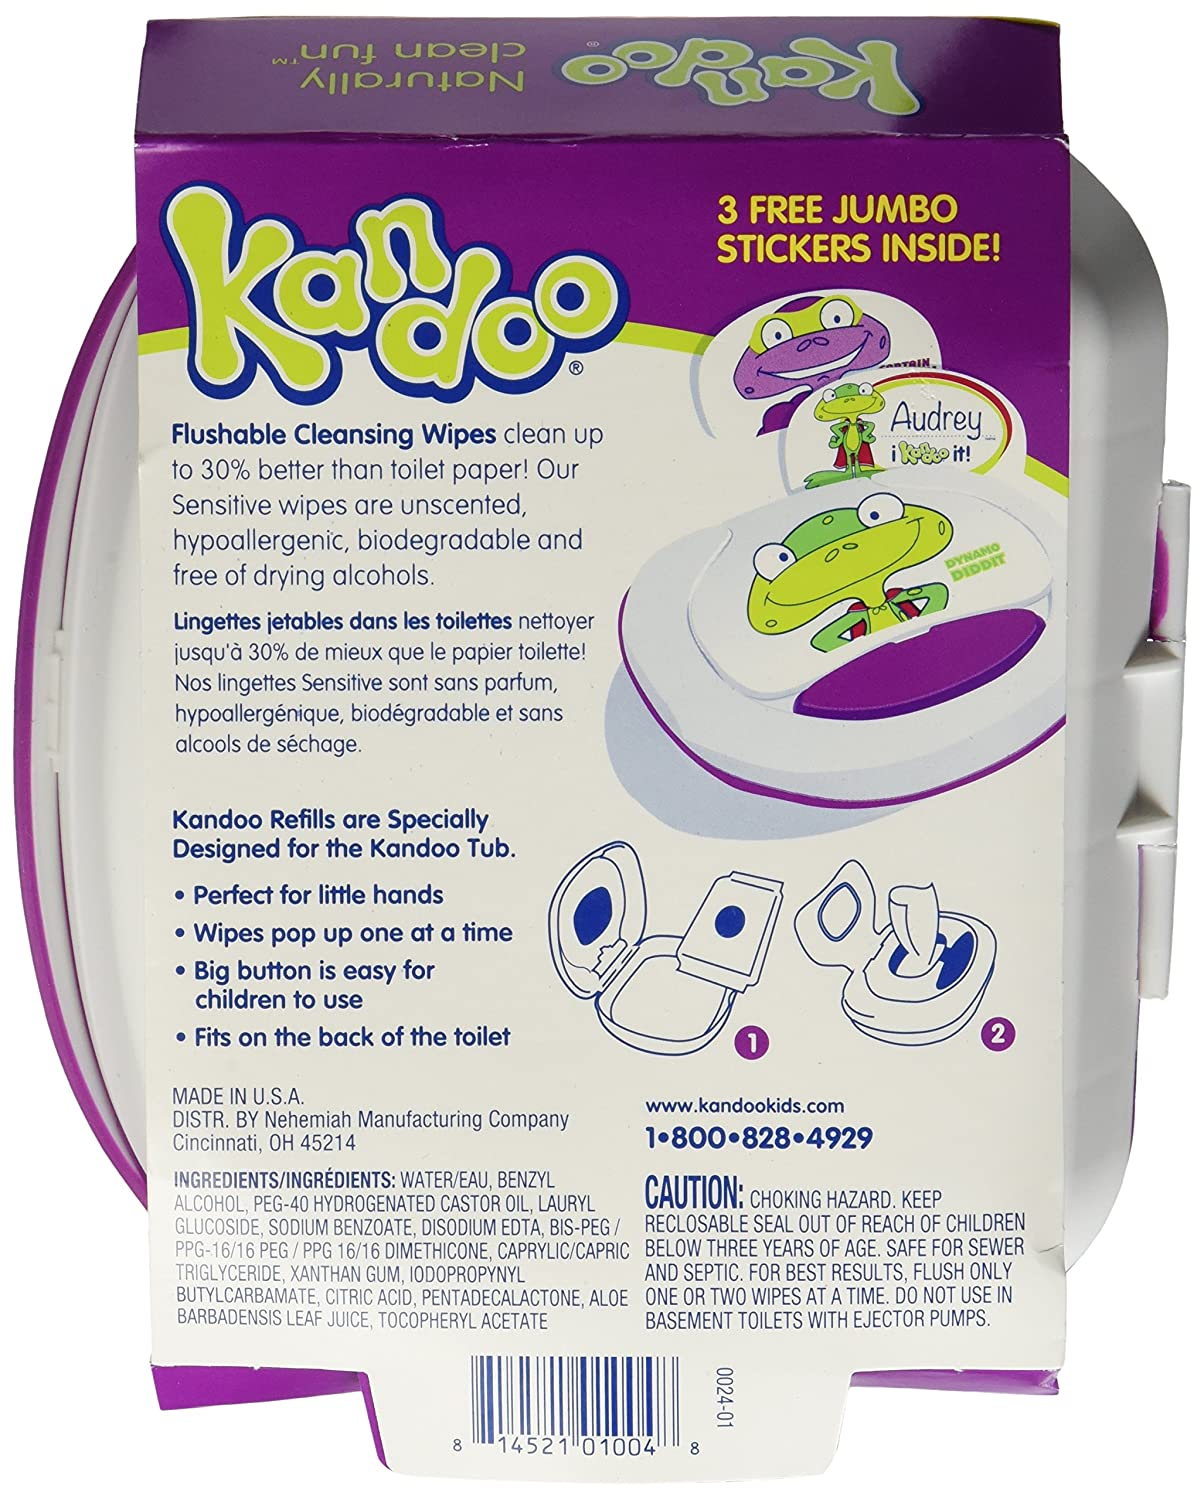 Kandoo Flushable Sensitive Toddler Wipes Tub 50Ct. by Nehemiah: Amazon.es: Salud y cuidado personal